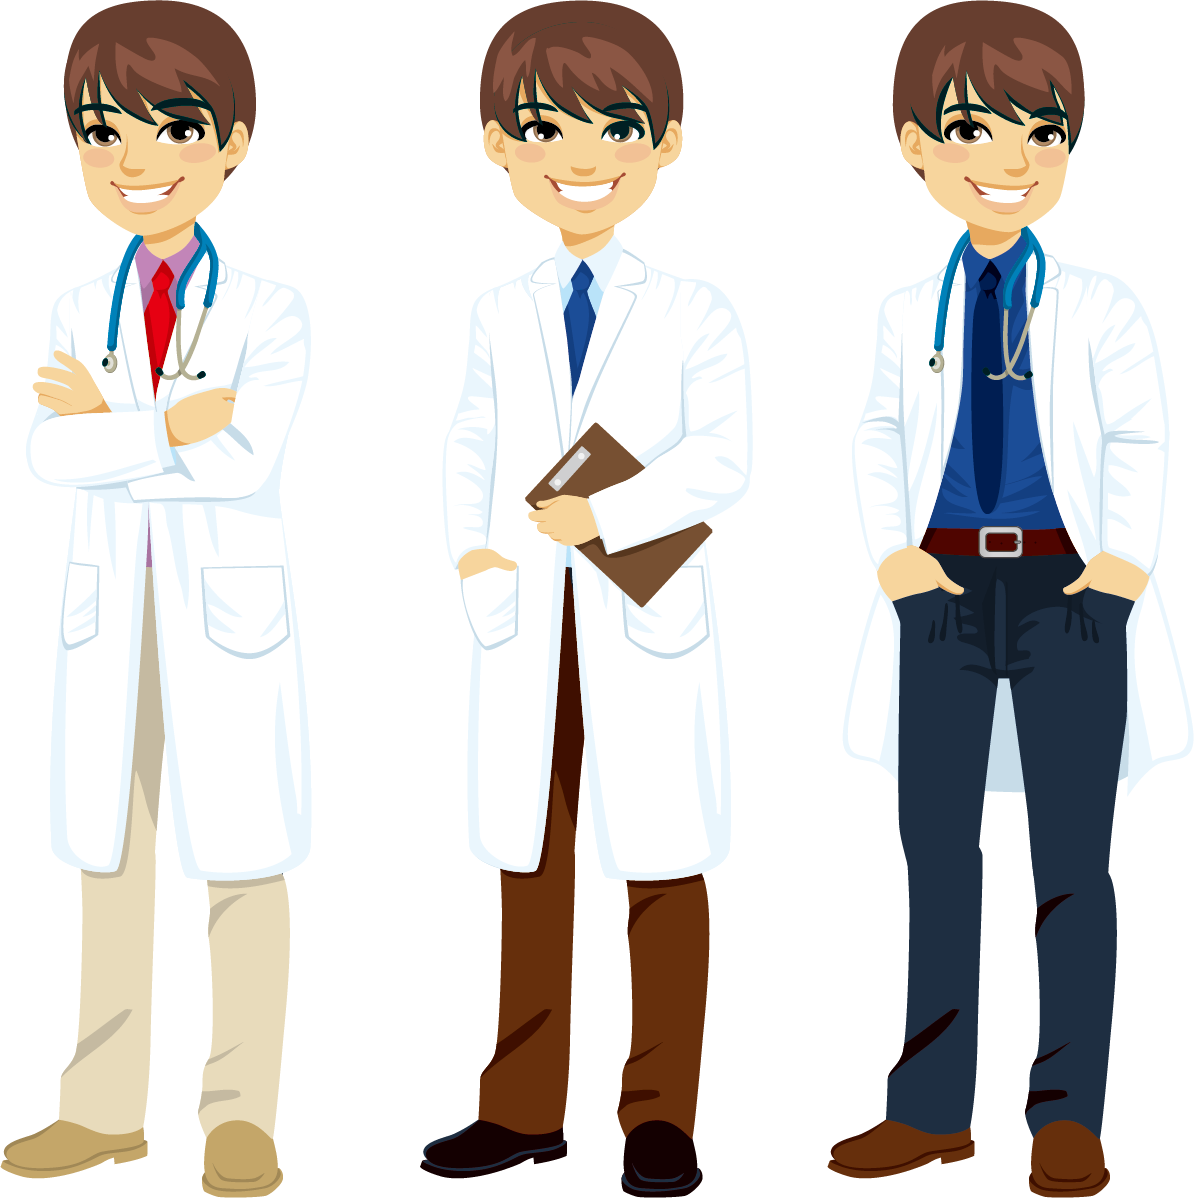 Physician stock photography clip. Clipart doctor female doctor